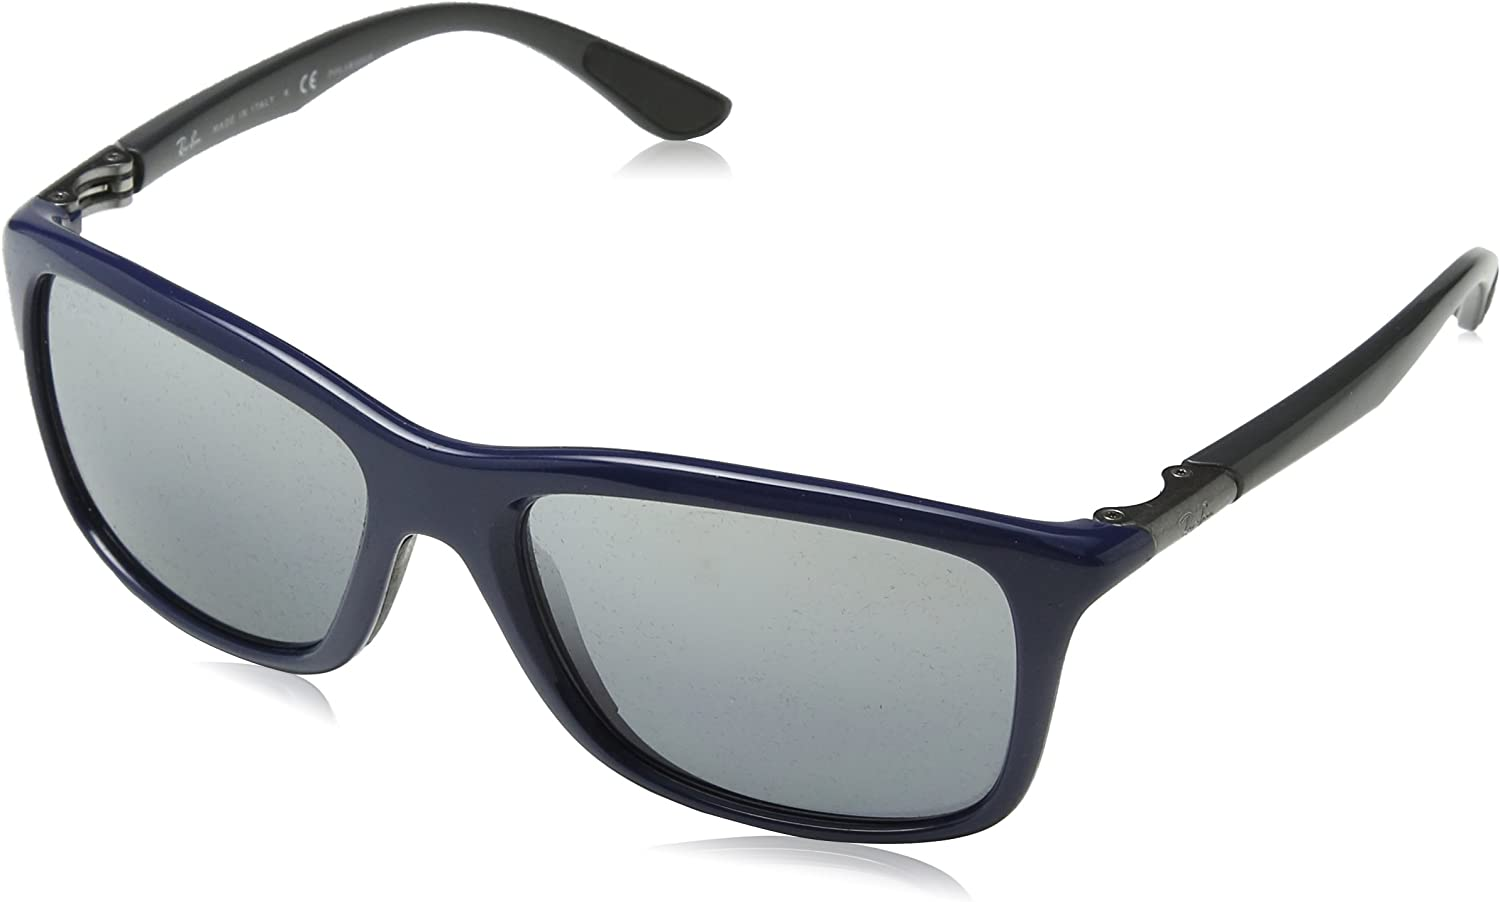 Ray-Ban Sonnenbrille (RB 8352)